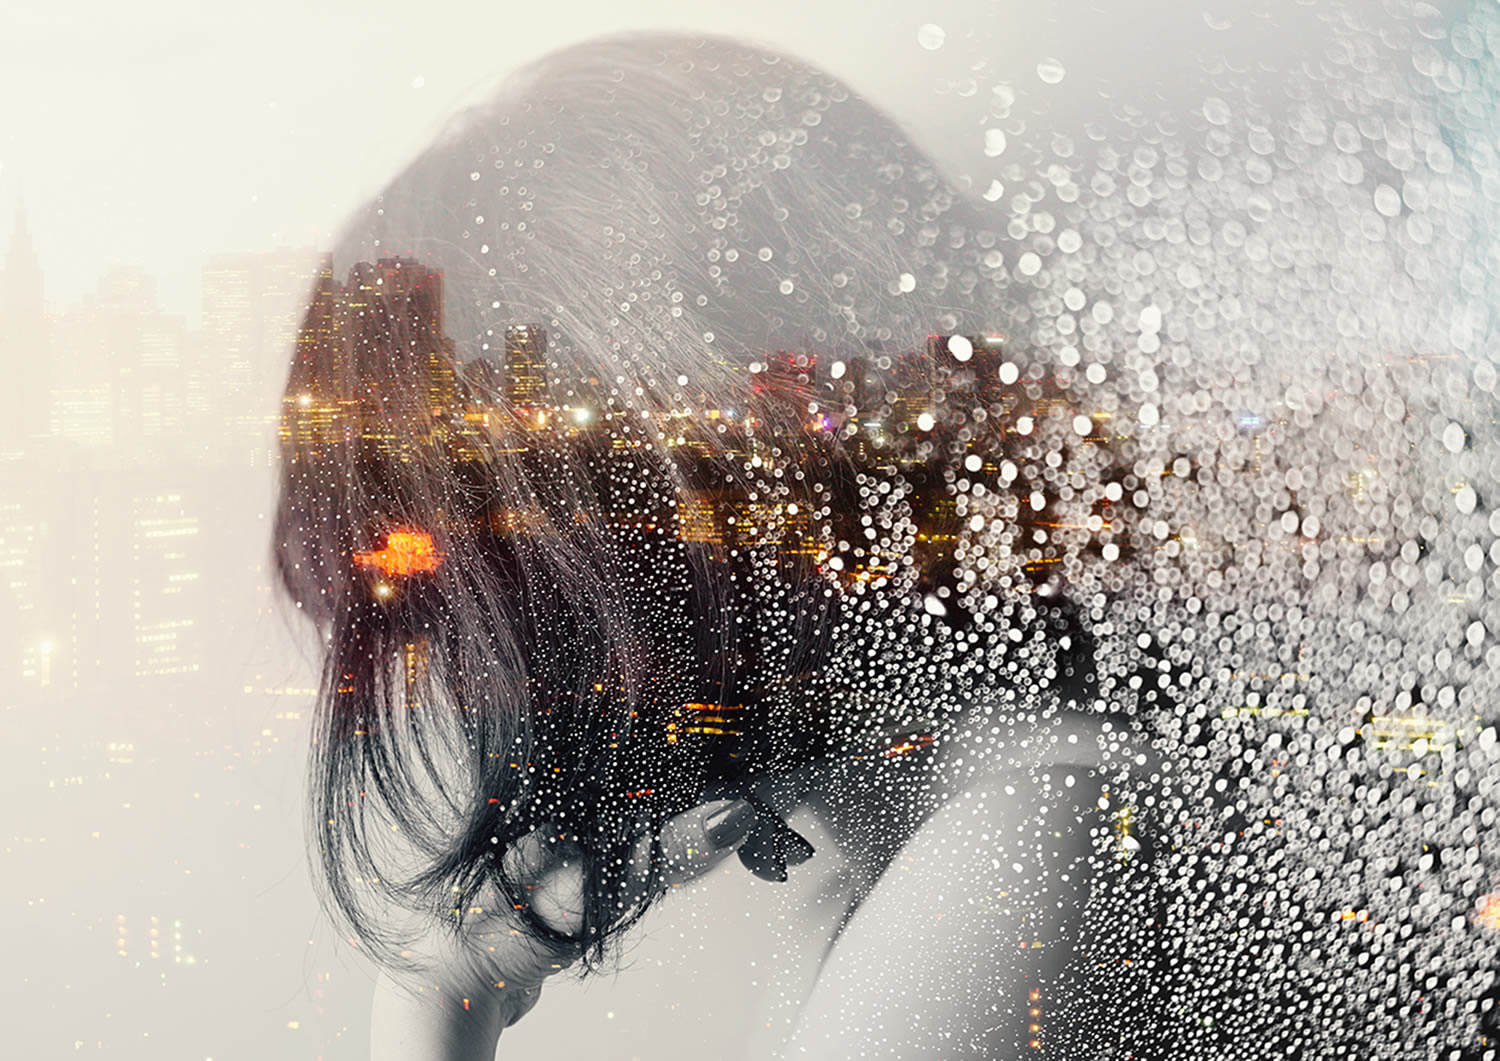 double exposure, rain drops and girl